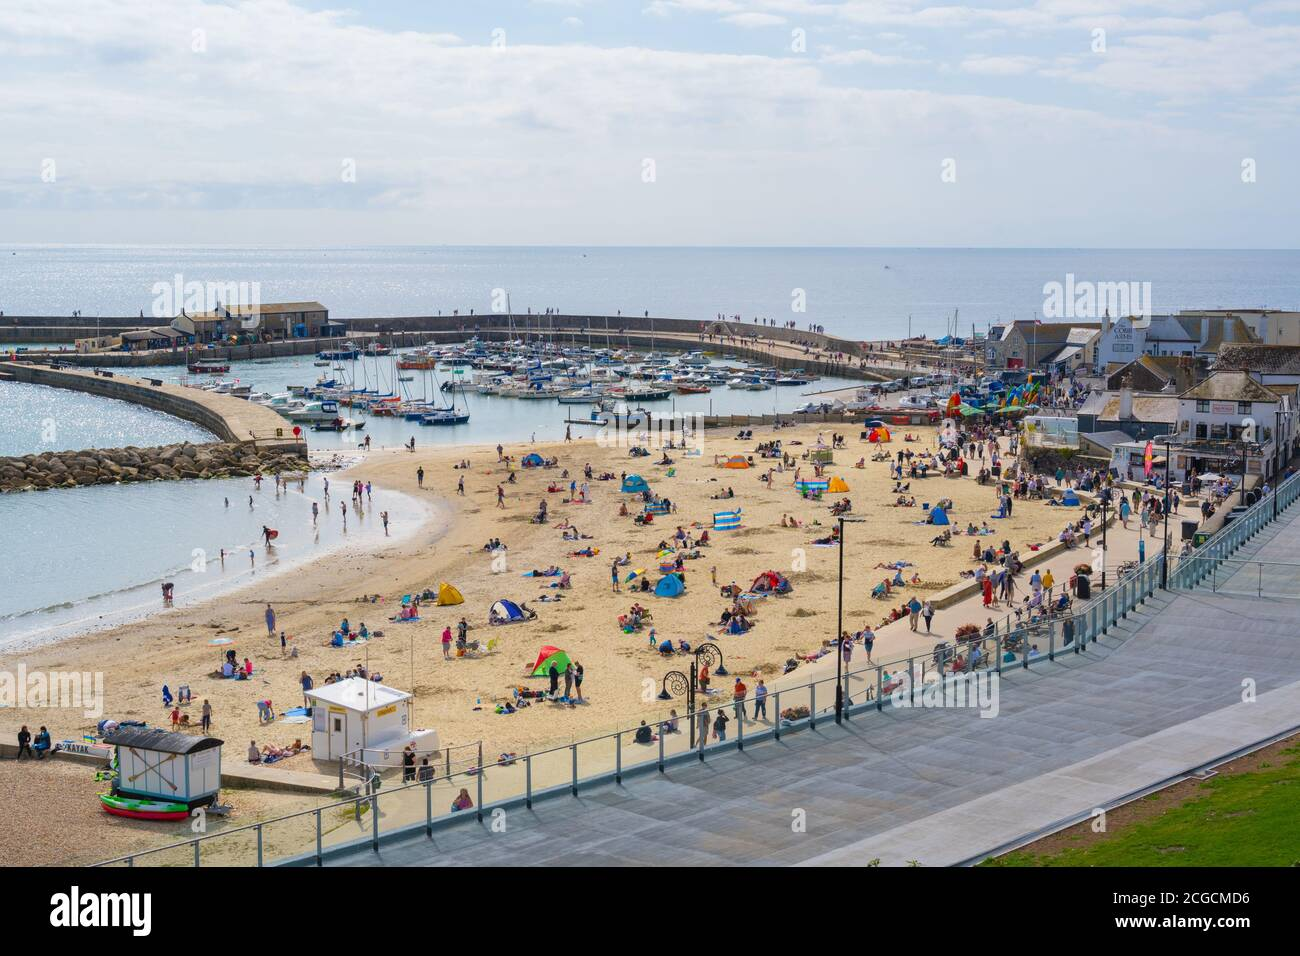 Lyme Regis, Dorset, UK. 10th Sep, 2020. UK Weather: There were plenty of people out and about enjoying the lovely warm September sunshine at the seaside resort of Lyme Regis ahead of the mini heatwave and 'Indian Summer' forecast over the weekend. Credit: Celia McMahon/Alamy Live News Stock Photo